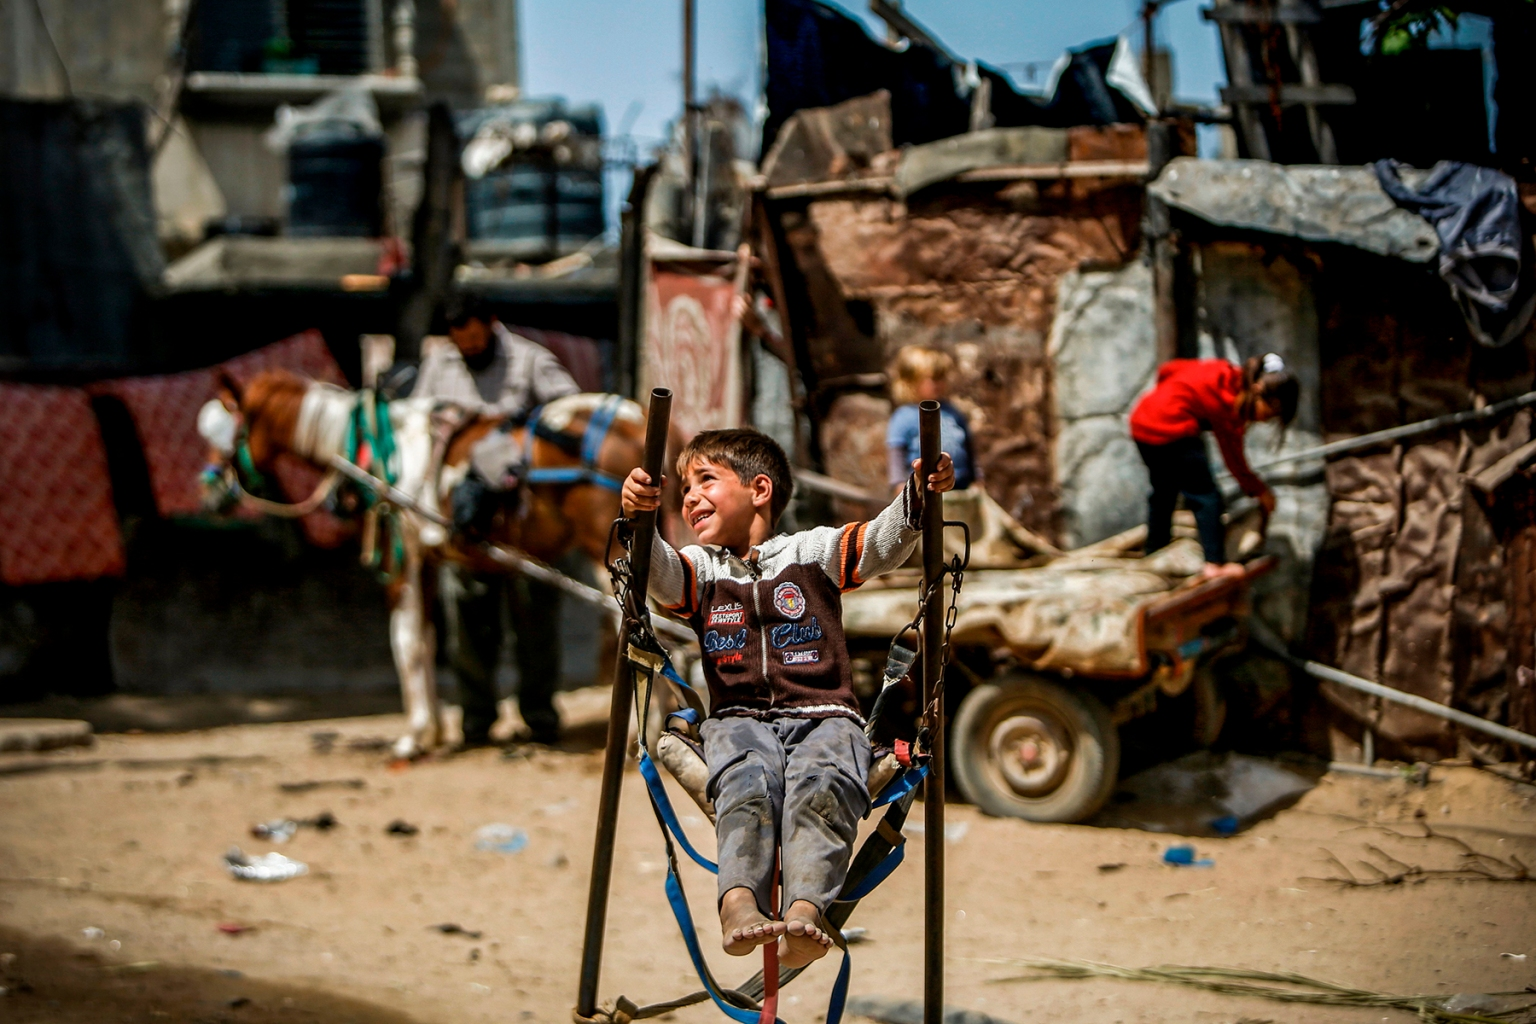 A Palestinian boy rides on a makeshift swing in an impoverished area in Beit Lahia in the northern Gaza Strip on May 22. MOHAMMED ABED/AFP/Getty Images